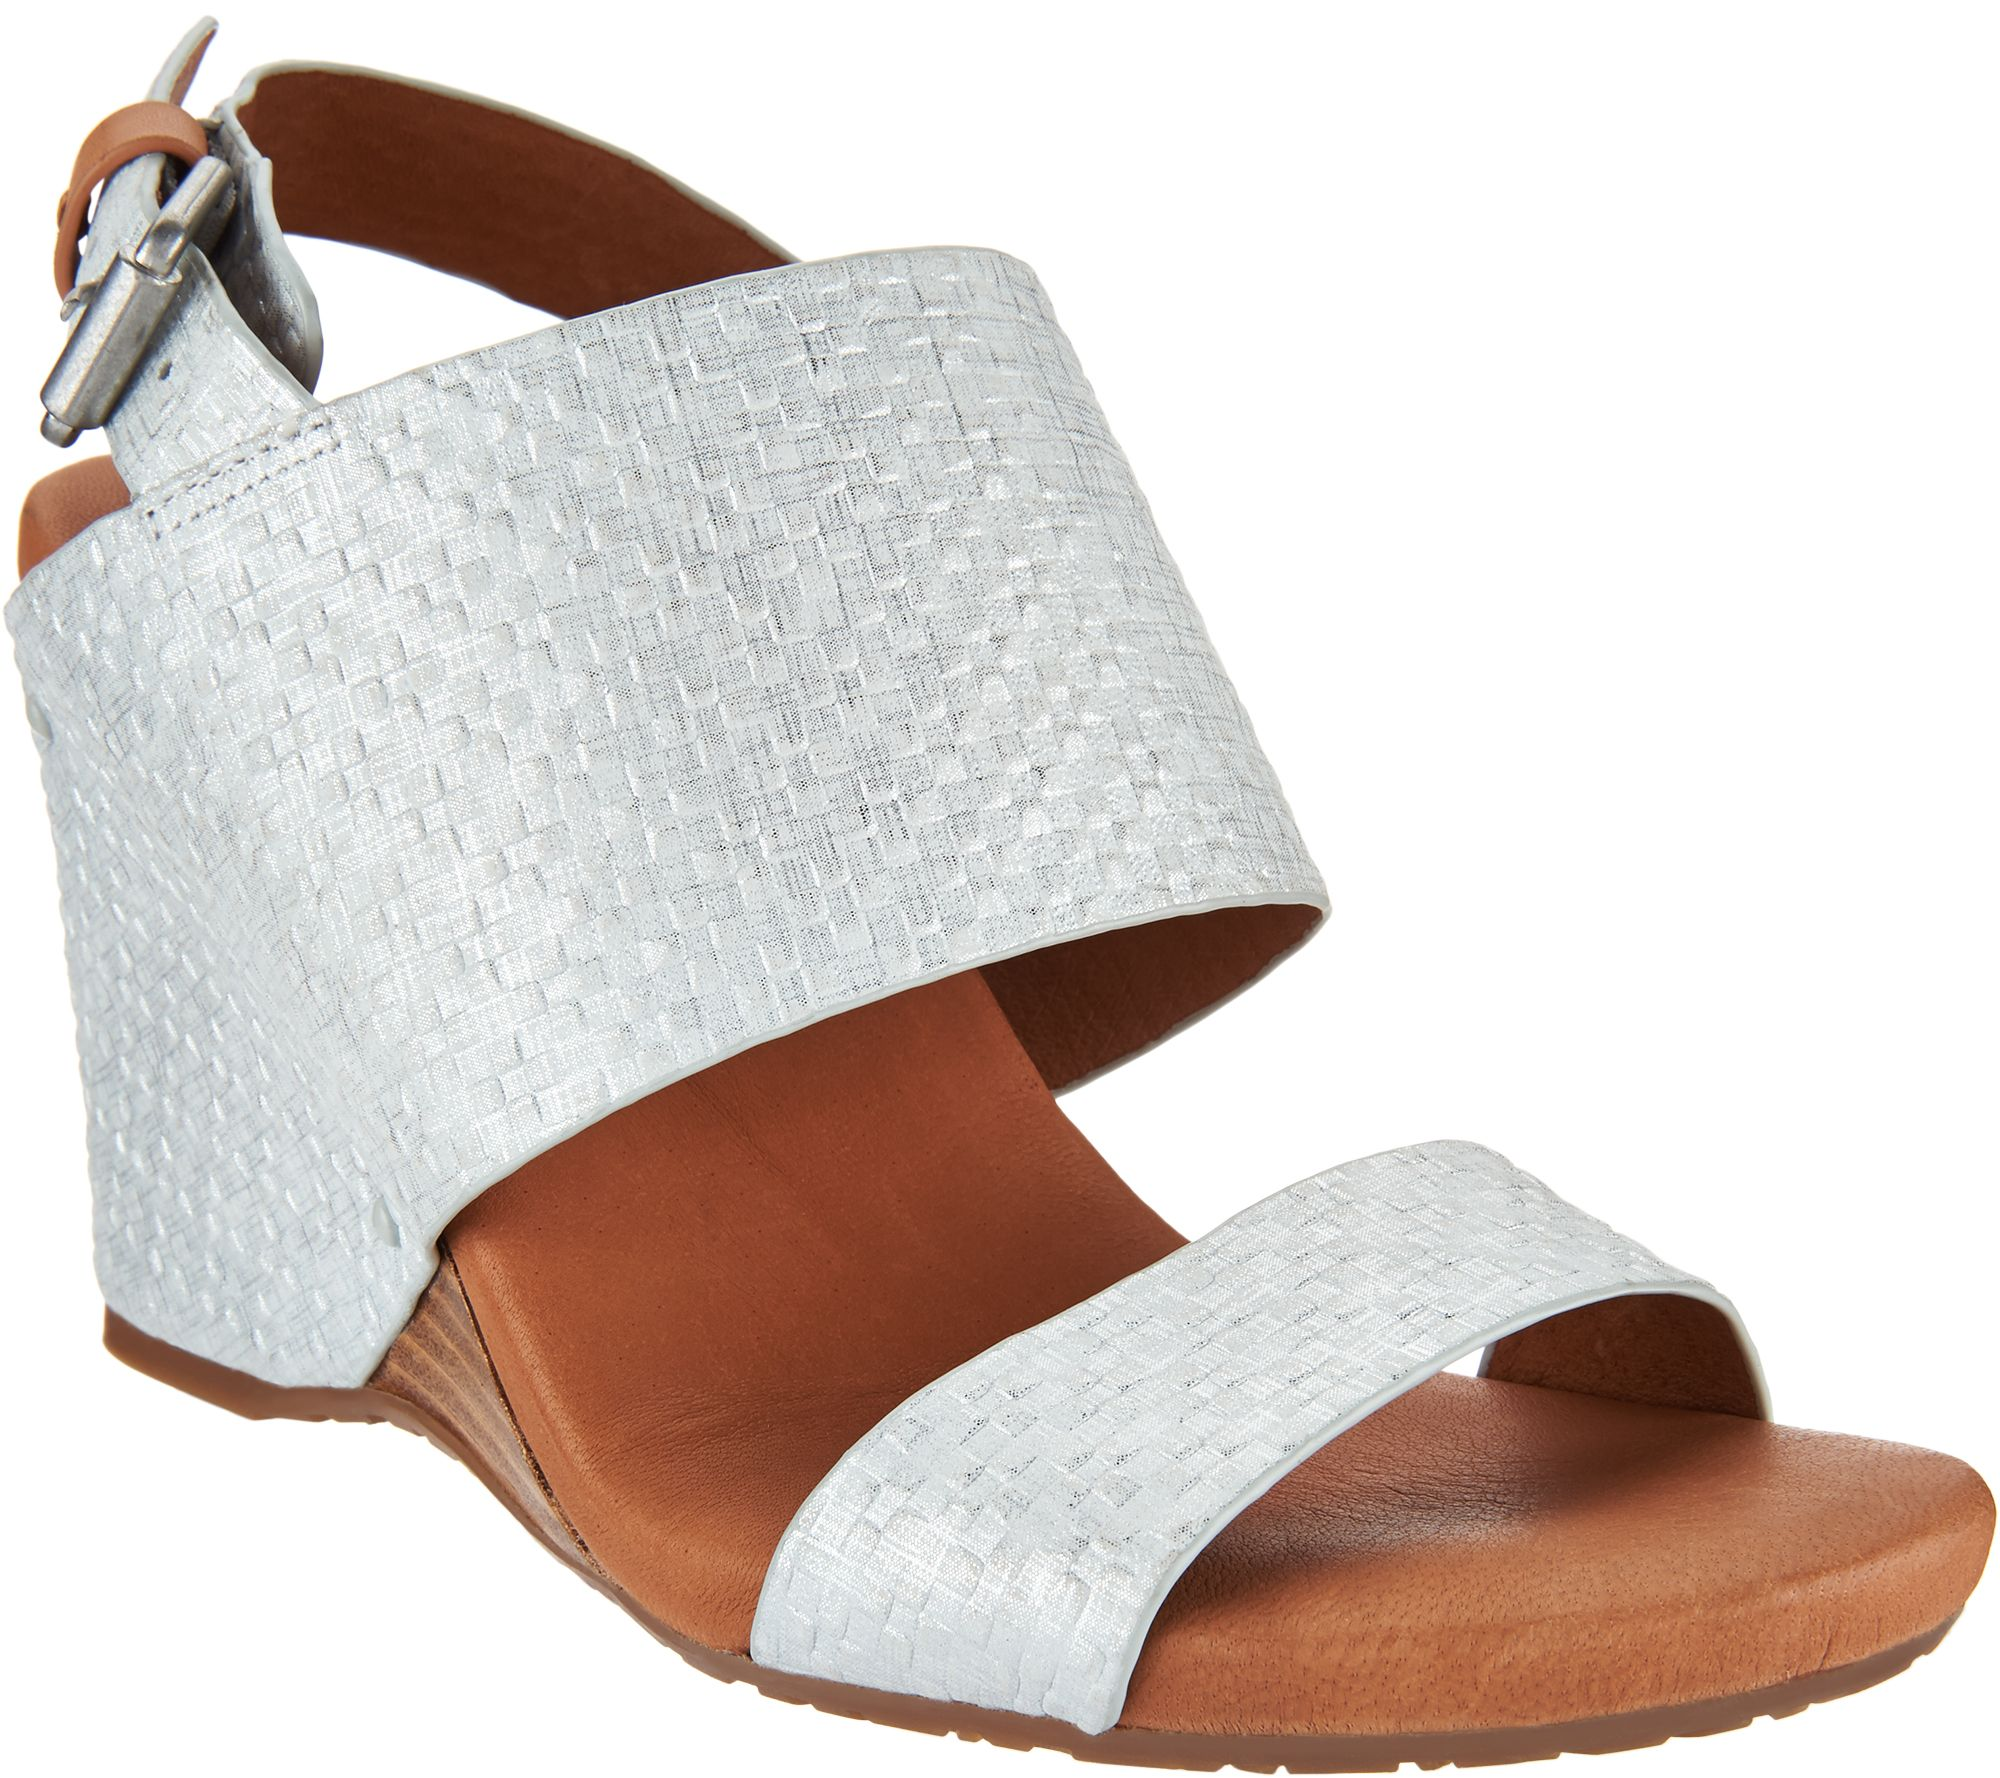 Gentle Souls Leather Covered Wedge Sandals - Inka cheap geniue stockist r1qpvjiCk4